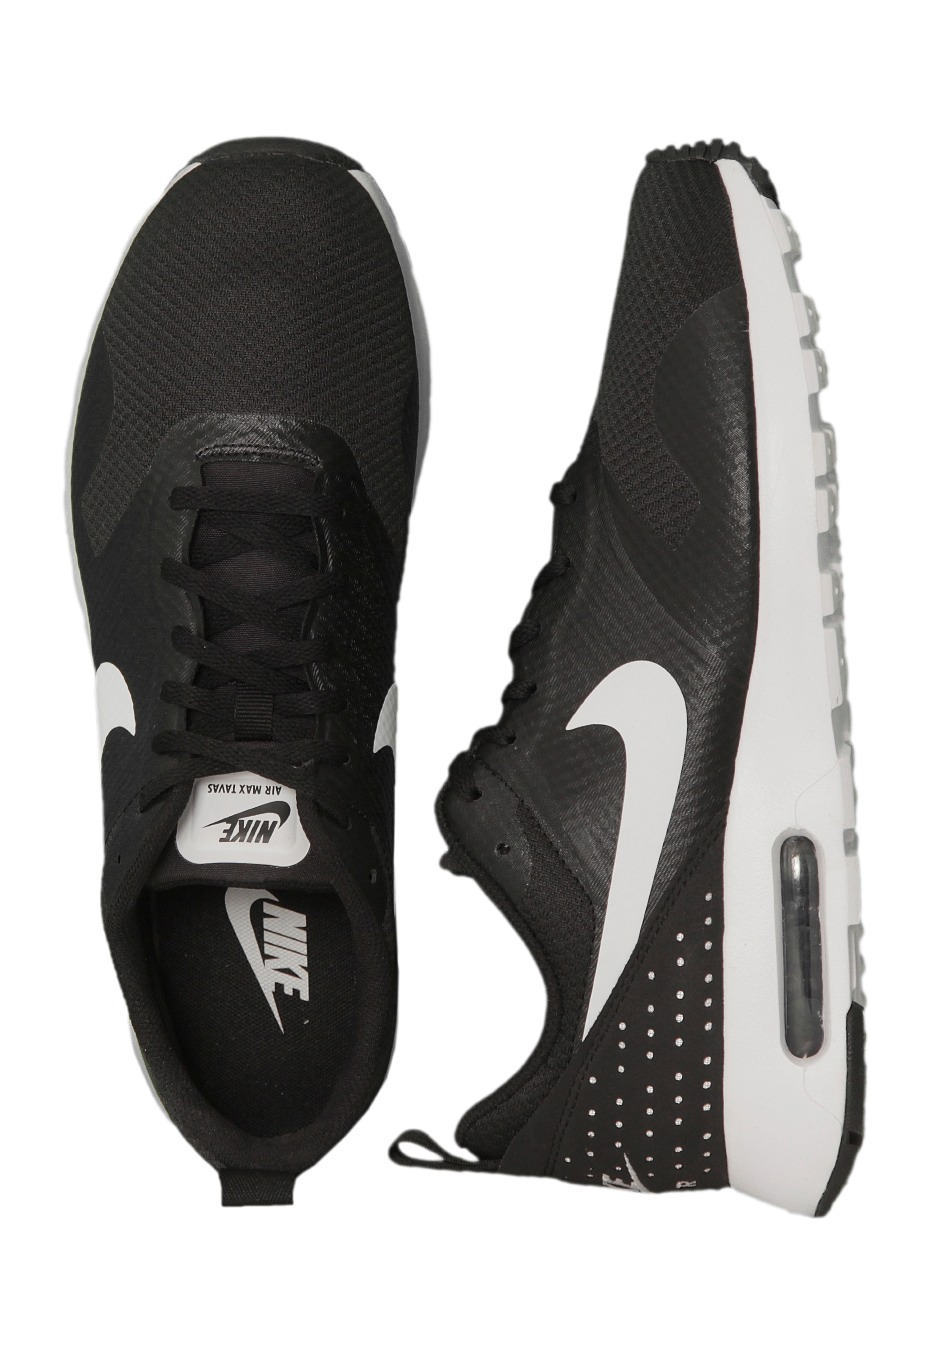 Nike - Air Max Tavas Black White Black - Shoes - Impericon.com UK e294917bd